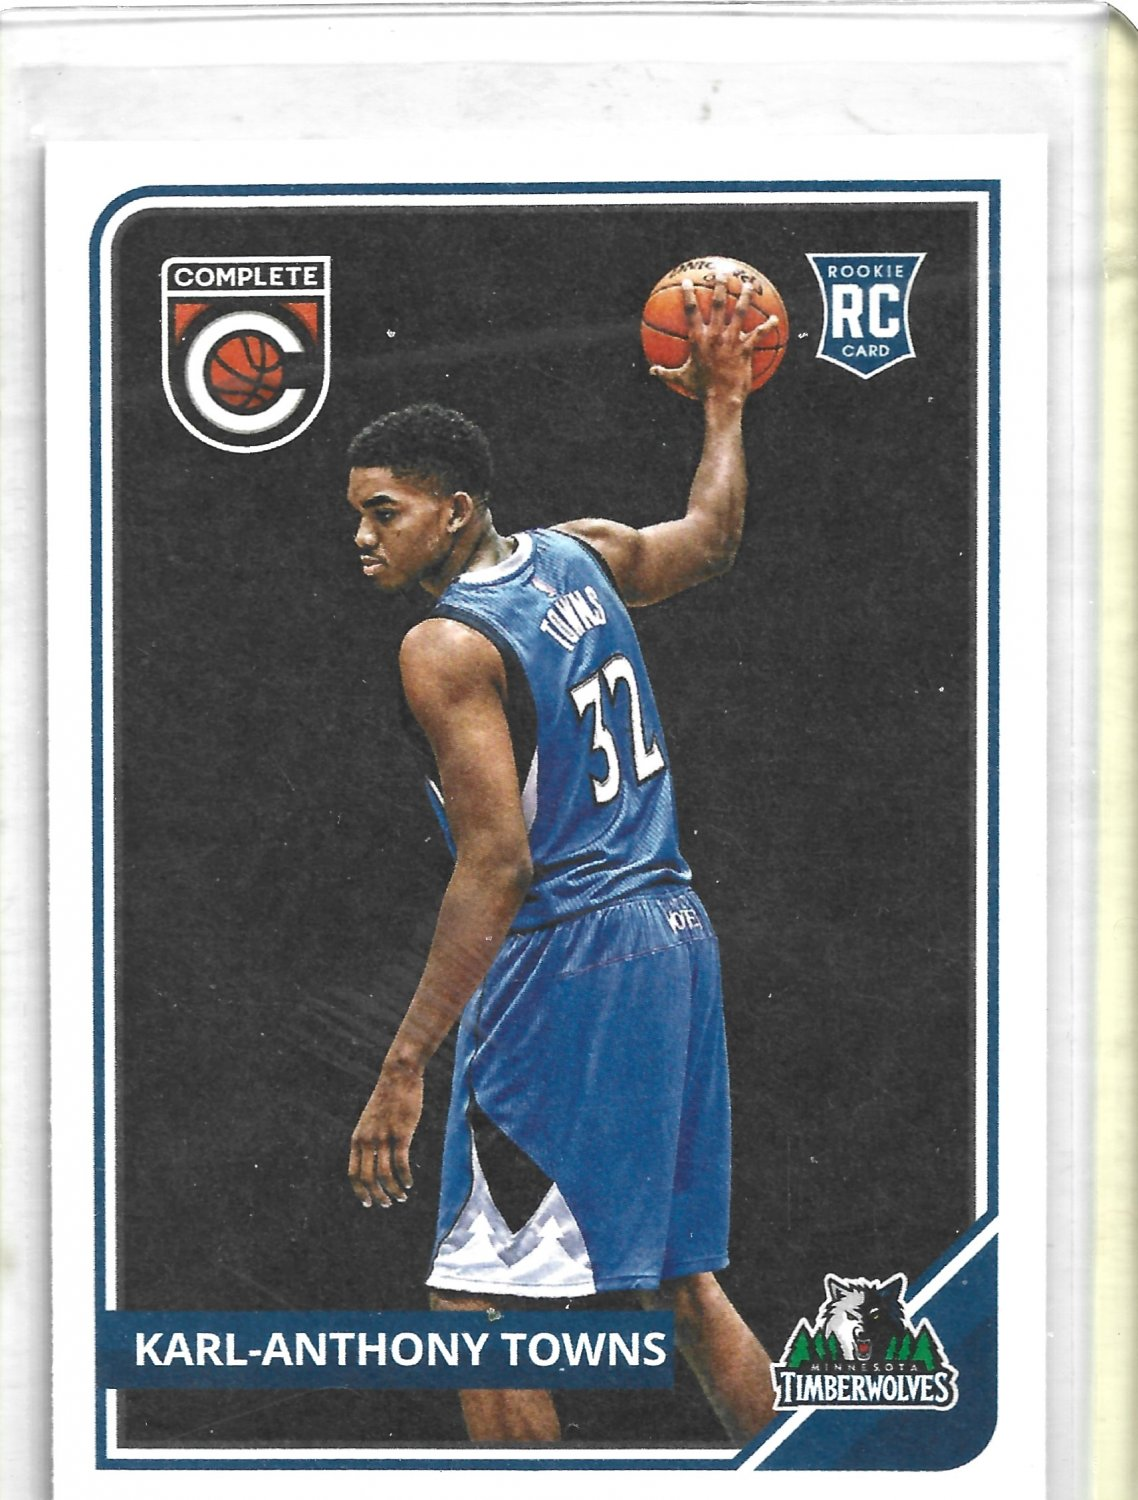 Karl-Anthony Towns #303